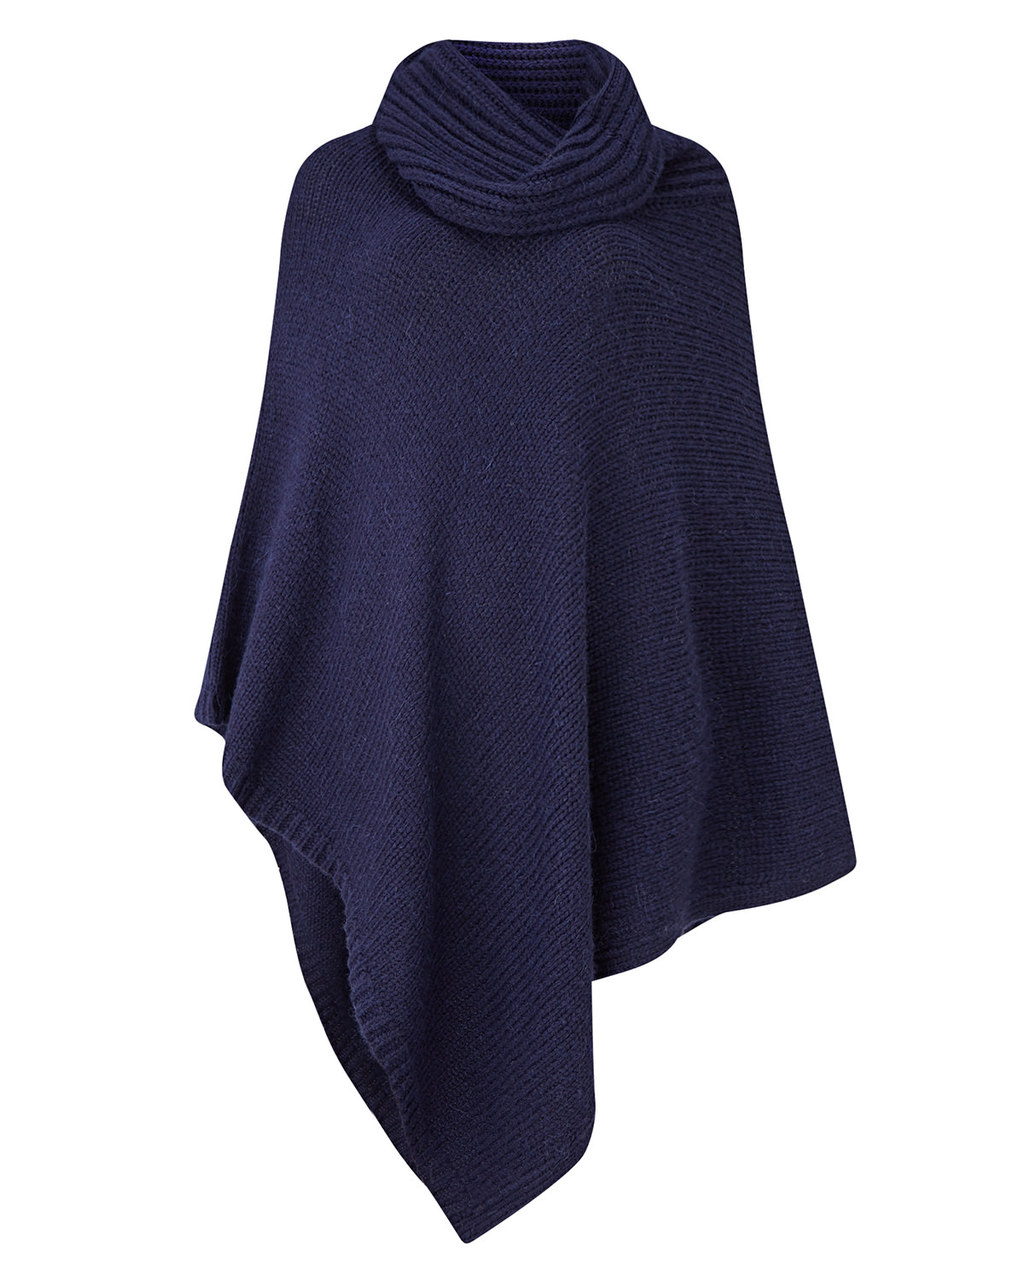 Cashel Poncho - pattern: plain; length: below the bottom; neckline: roll neck; style: poncho; predominant colour: navy; occasions: casual, creative work; fibres: wool - mix; fit: loose; sleeve length: long sleeve; texture group: knits/crochet; pattern type: knitted - fine stitch; sleeve style: cape/poncho sleeve; season: s/s 2016; wardrobe: highlight; embellishment: contrast fabric; embellishment location: bust